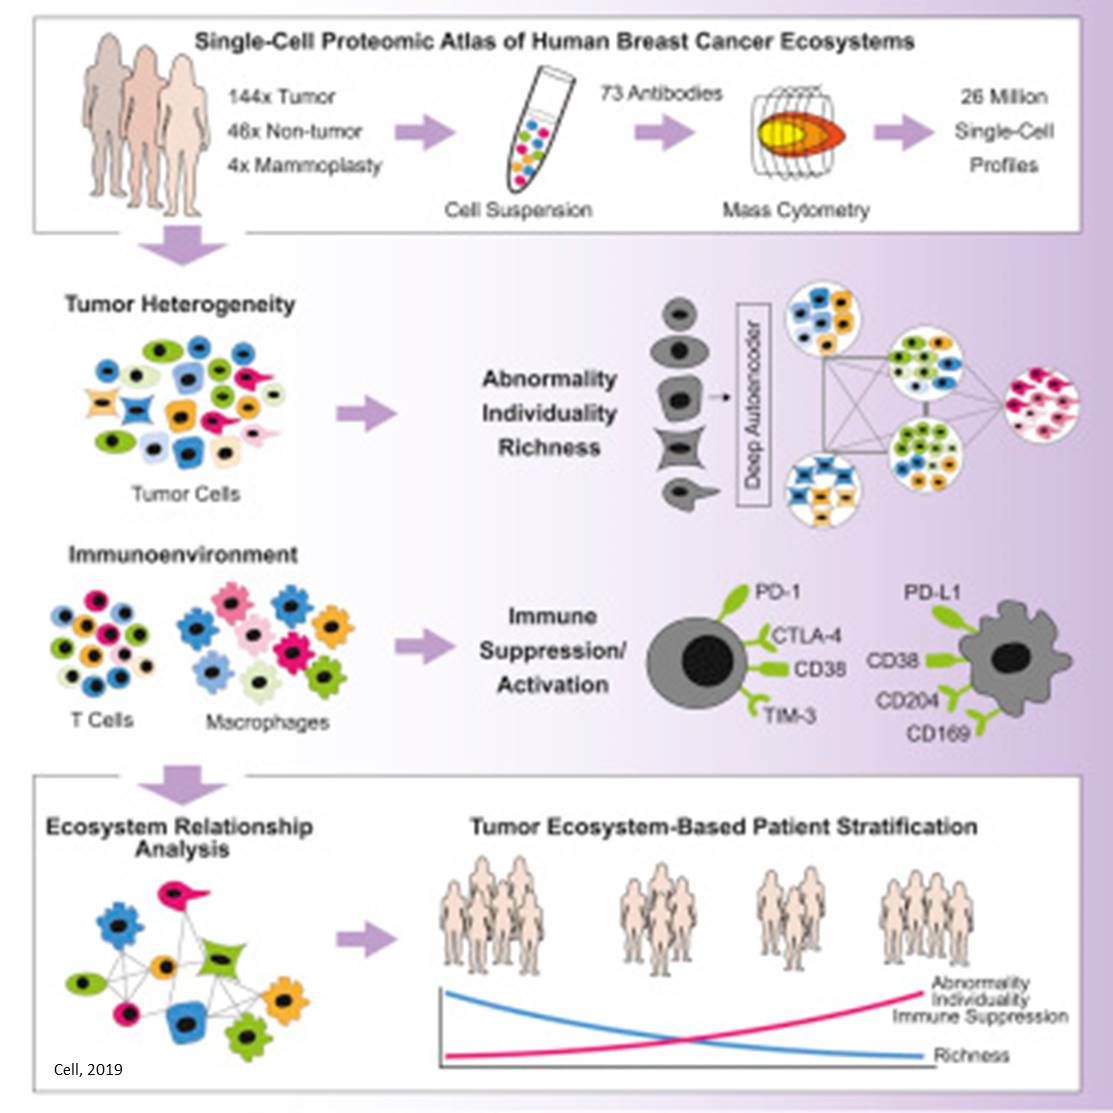 Evaluation of breast cancer cell ecosystem